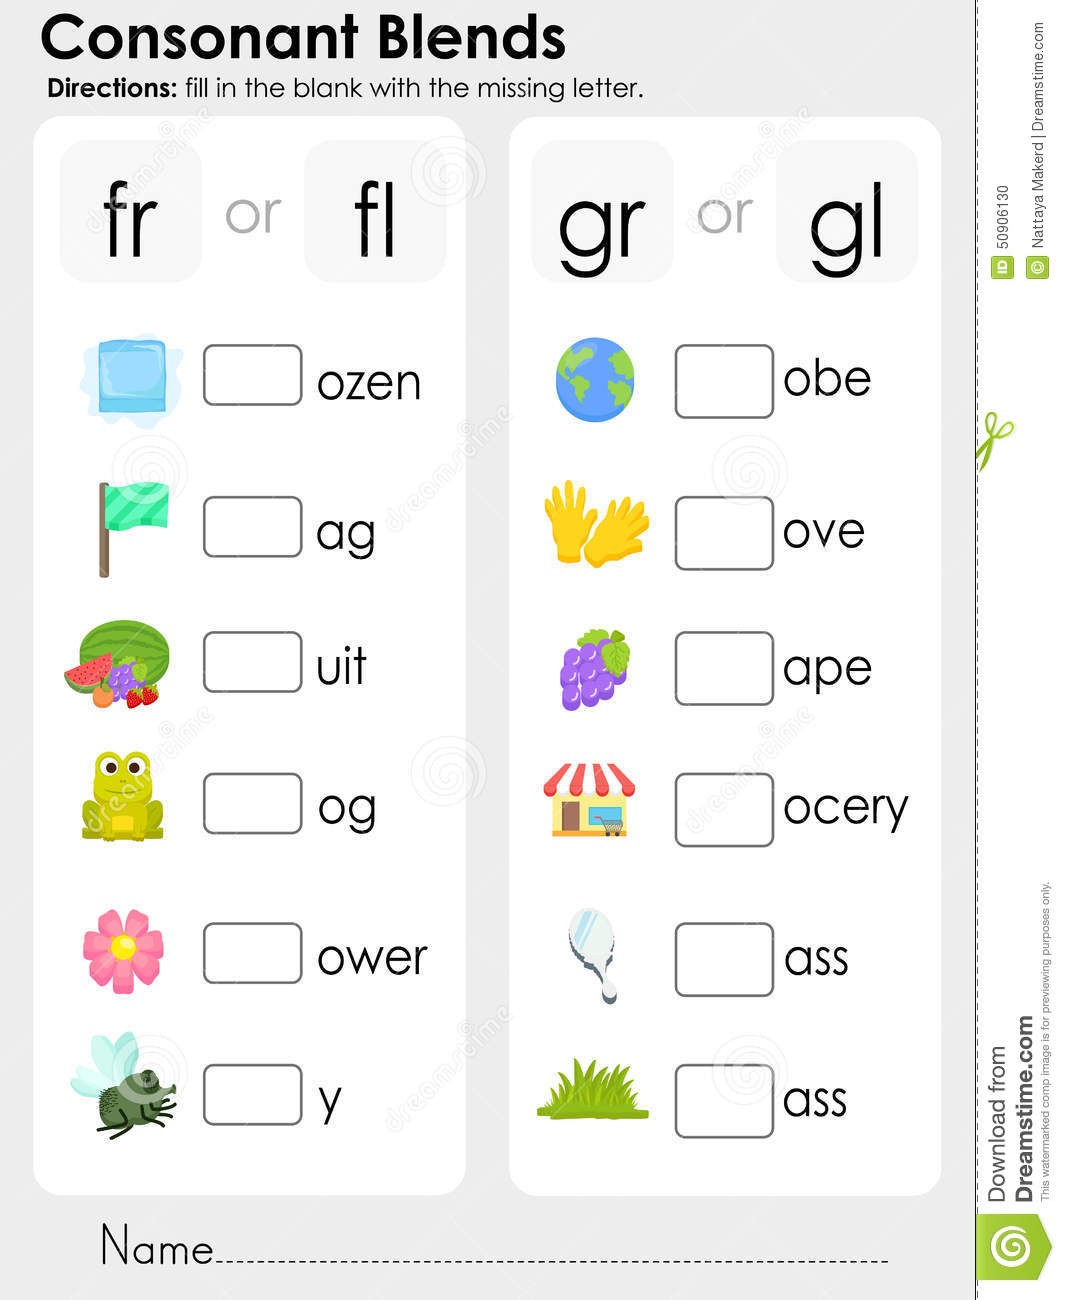 Blends Worksheets For Kindergarten Scalien – Kindergarten Fill in the Blank Worksheets